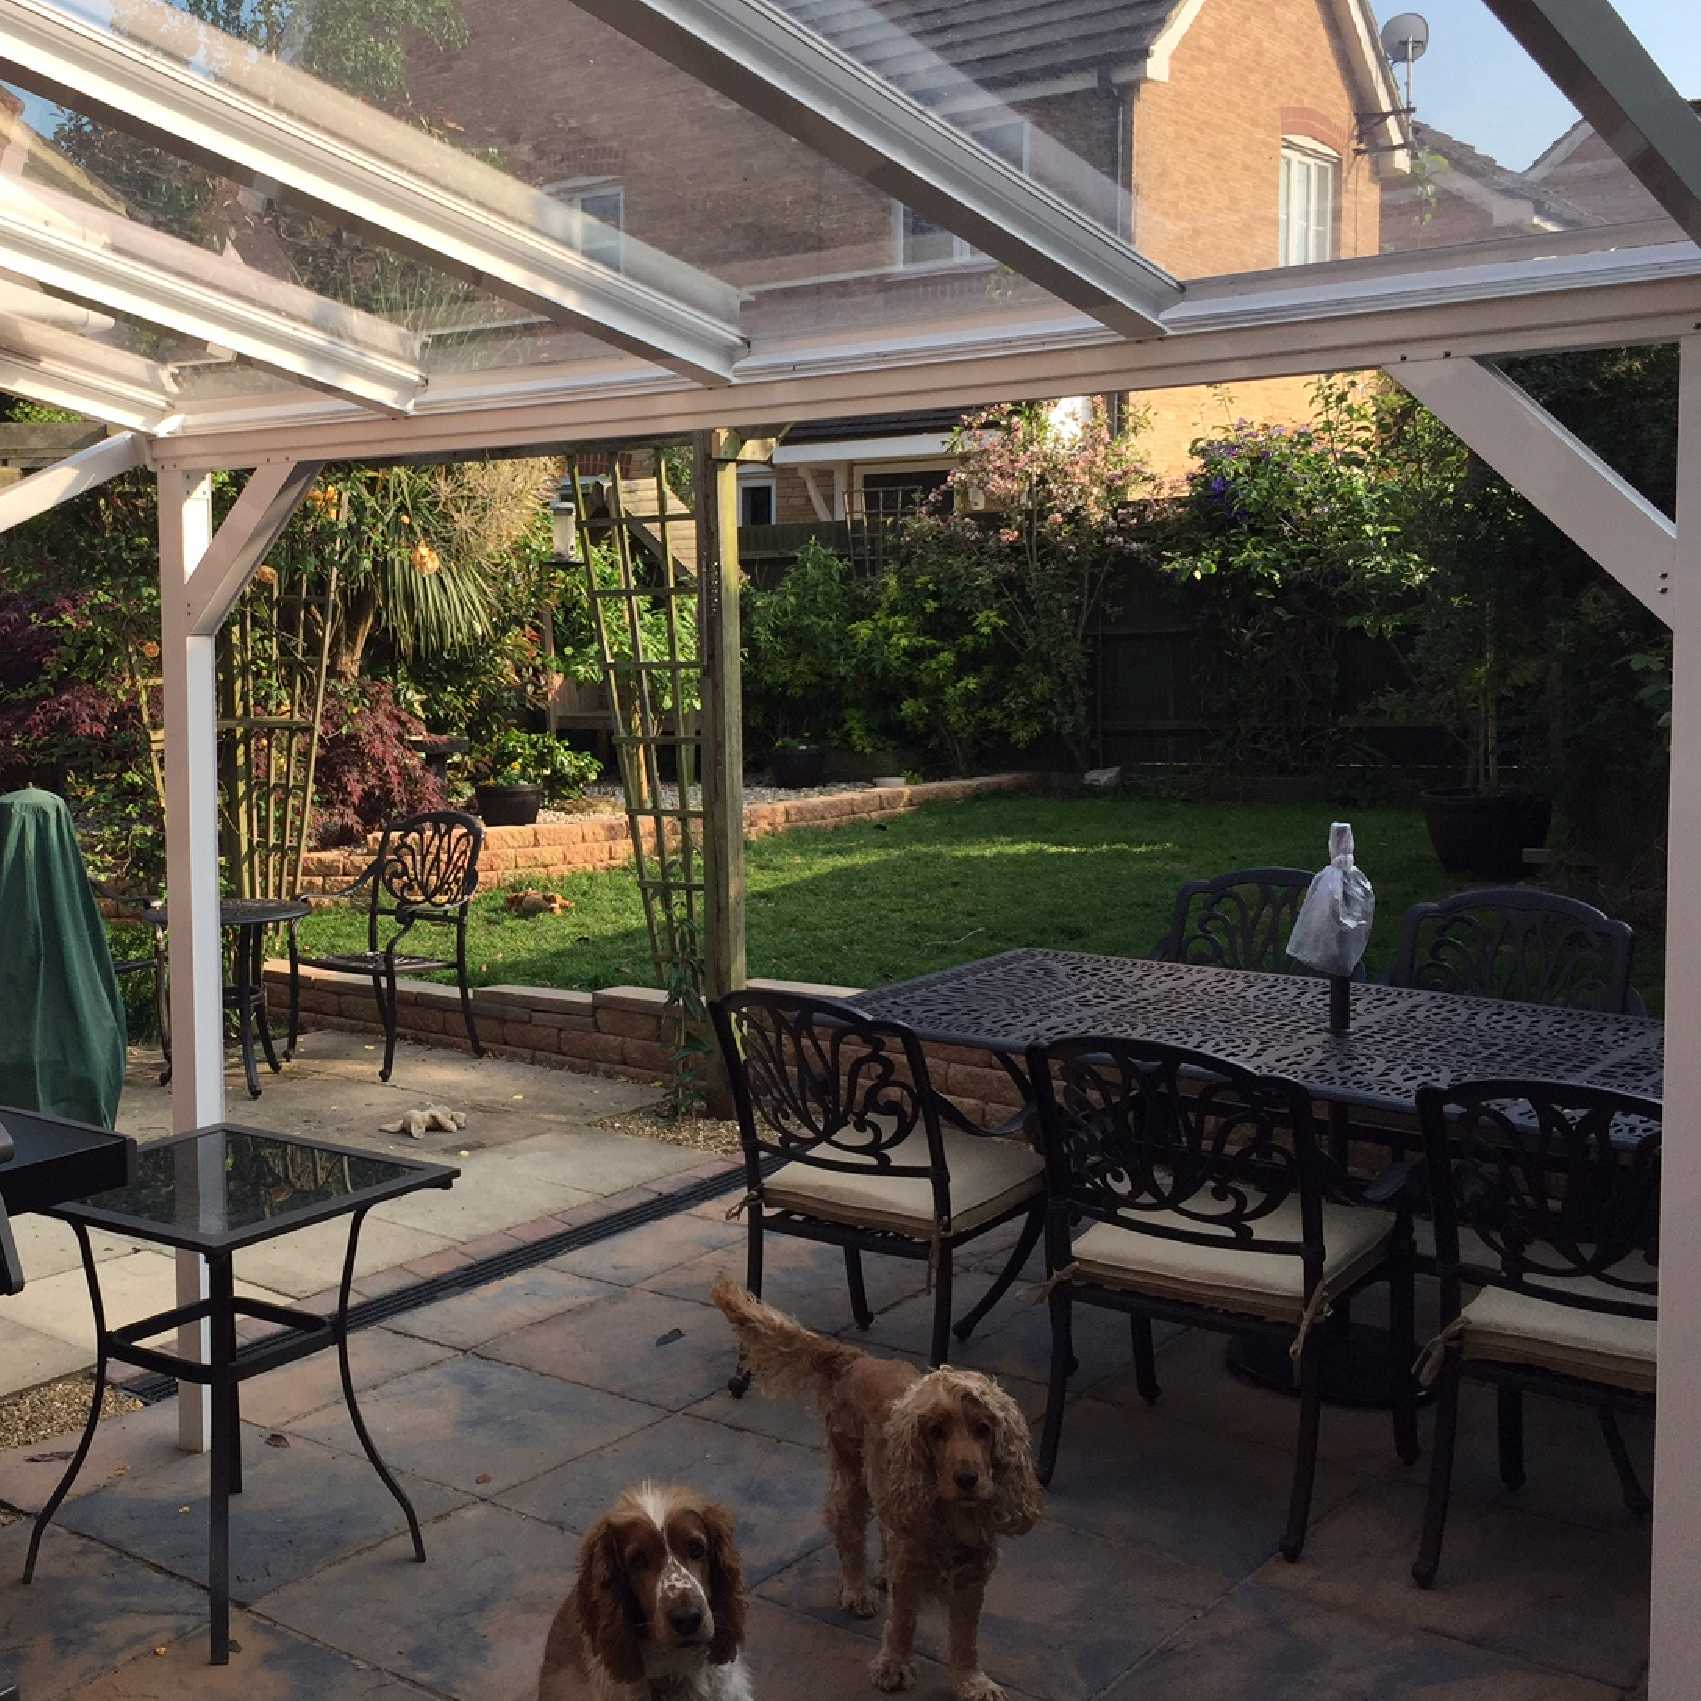 Affordable Omega Smart White Lean-To Canopy UNGLAZED for 6mm Glazing - 8.4m (W) x 1.5m (P), (4) Supporting Posts